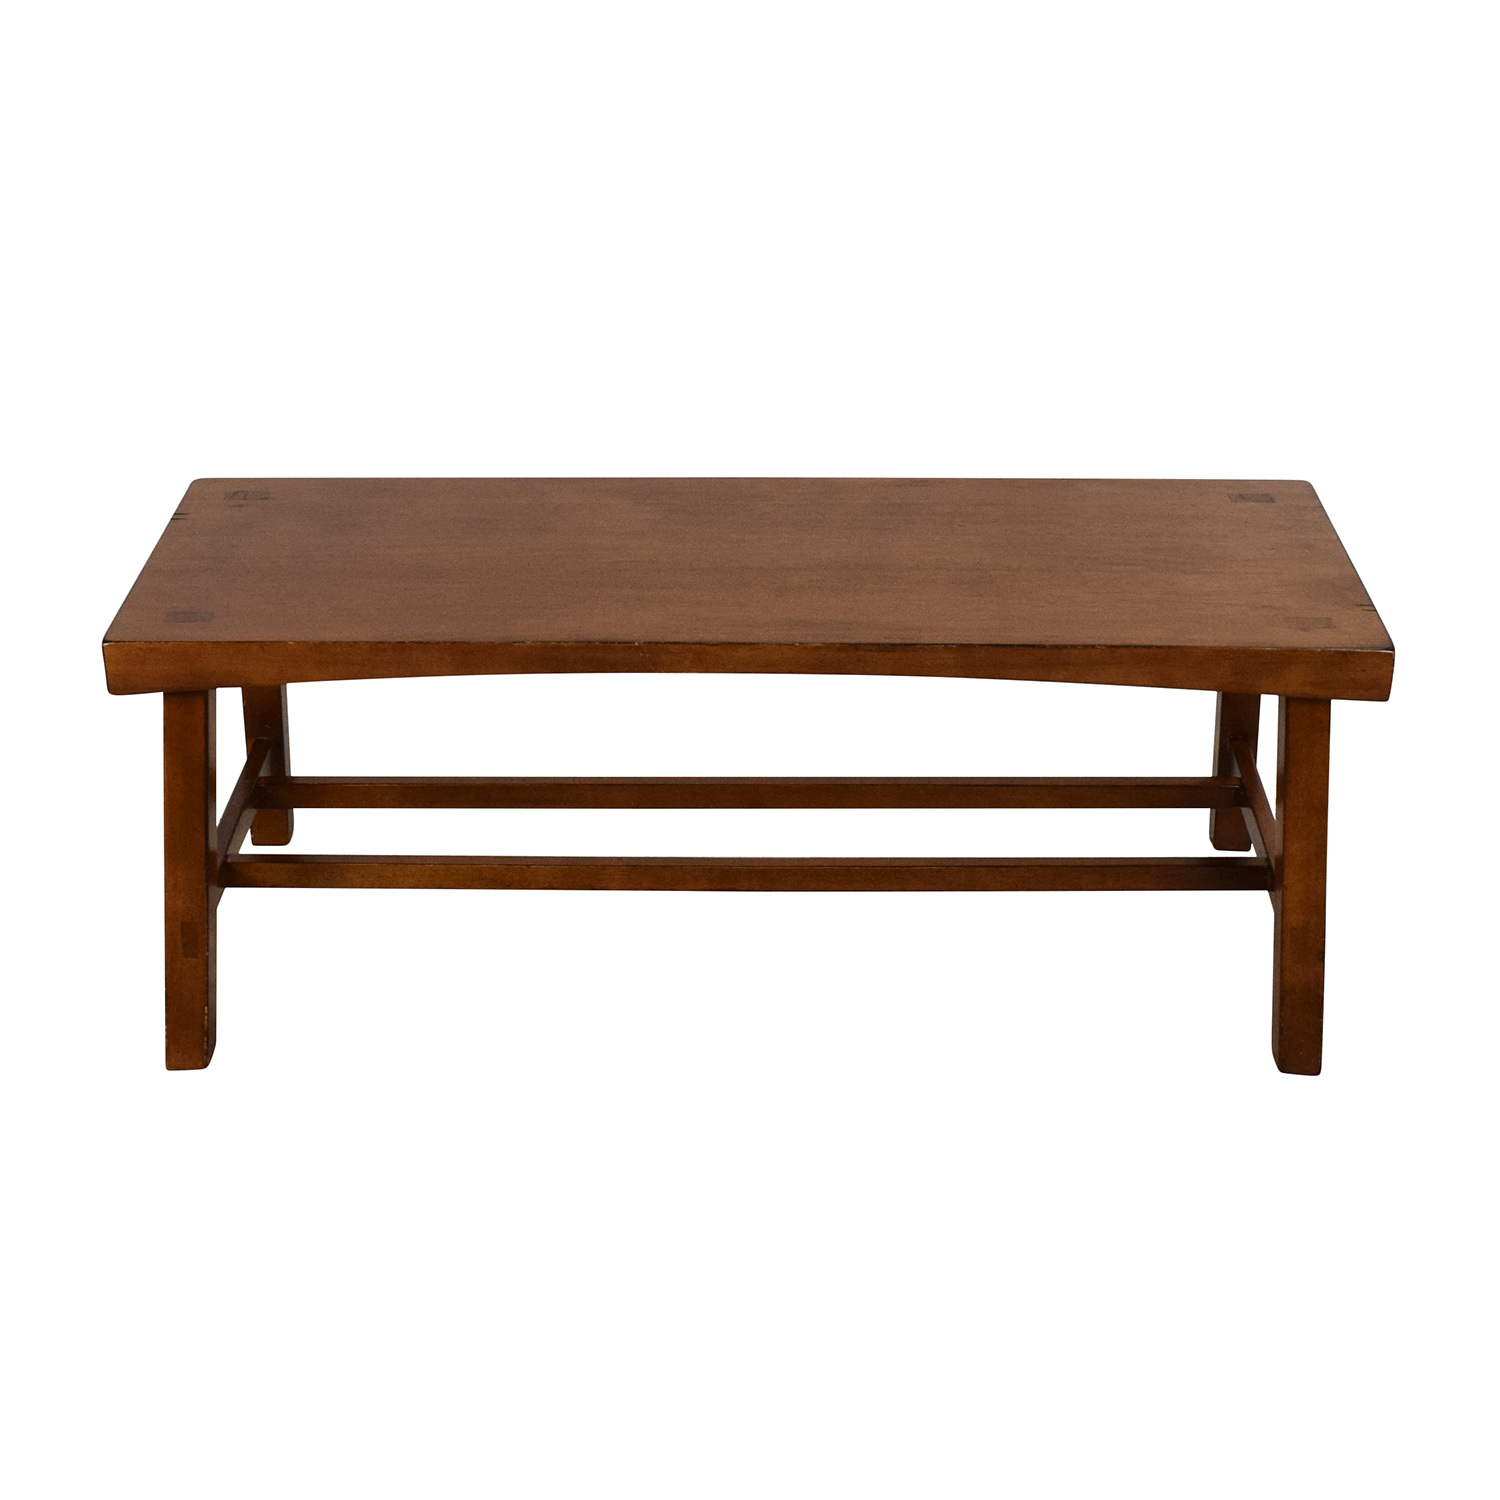 buy Crate & Barrel Wooden Coffee Table Crate and Barrel Coffee Tables